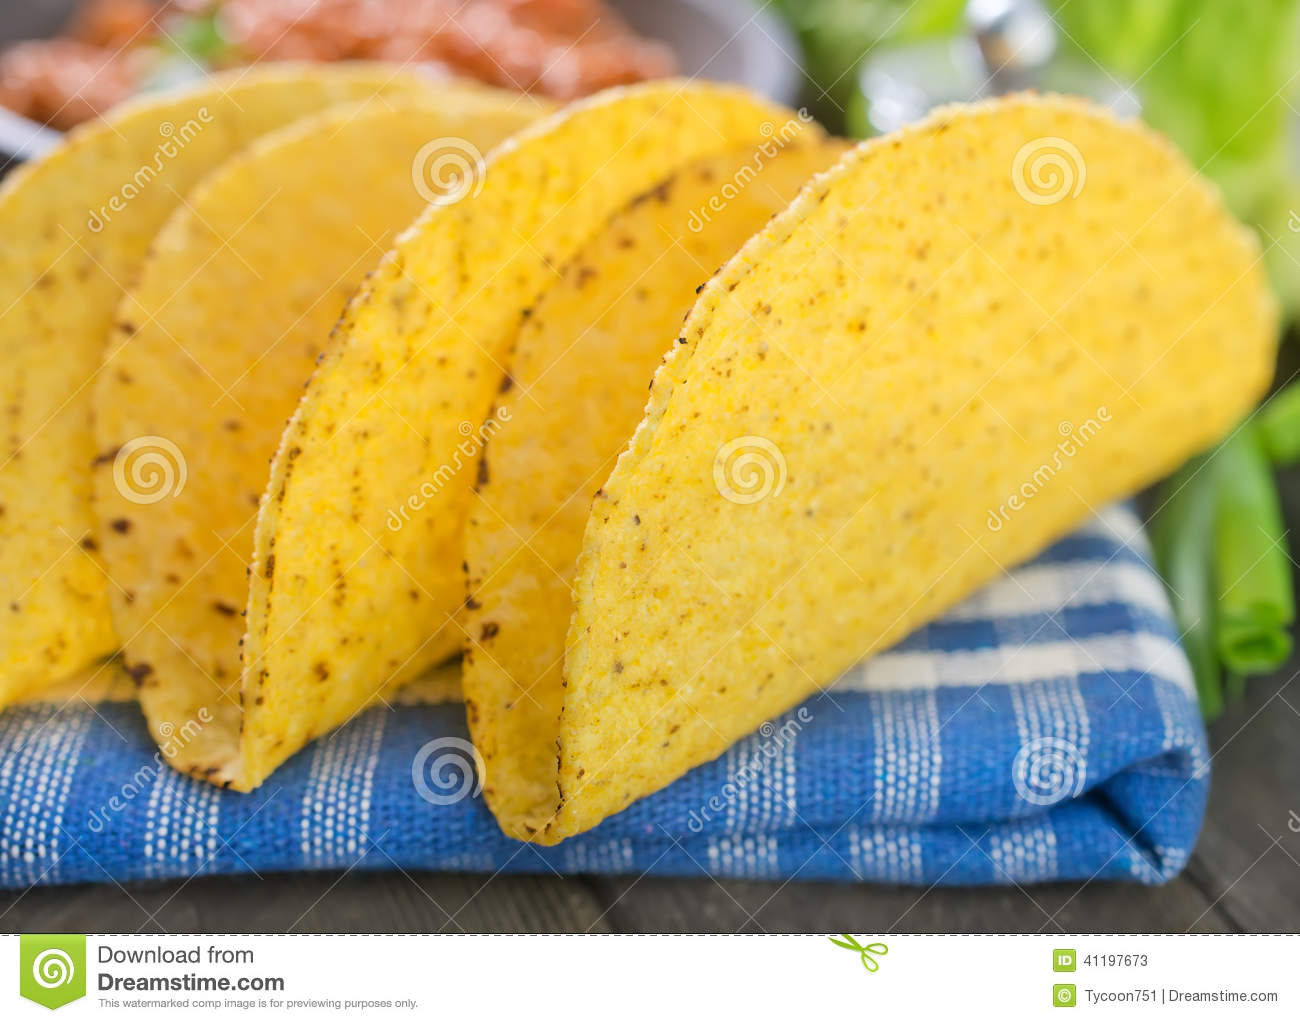 Ingredients for taco